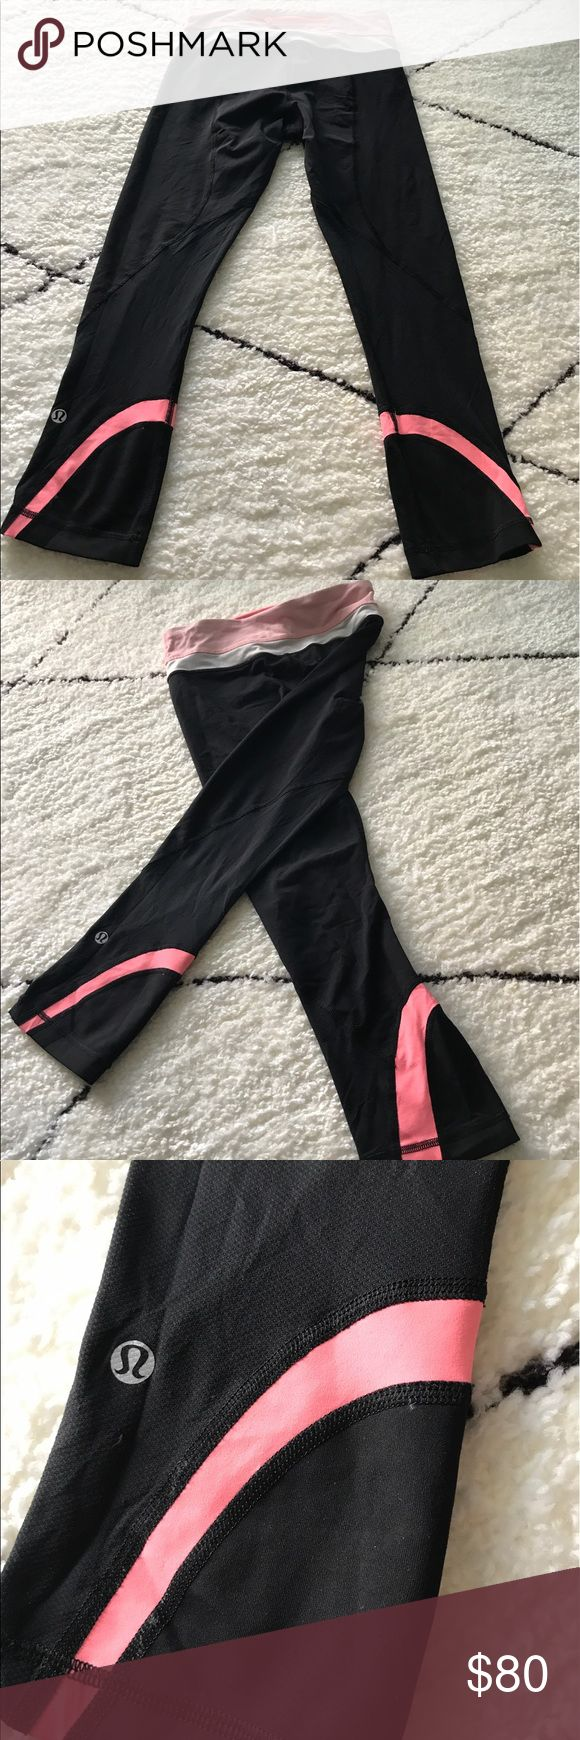 ✨Excellent Condition✨ Lululemon Run Inspire Crops Excellent condition Run Inspire Crops! No smell or defects. See pics for details. (Pic #5 is used for reference.) Color is a coral pink! Material is luon. Perfect for running or spinning. For additional product details, view the updated version on the website: https://shop.lululemon.com/p/women-crops/Pace-Rival-Crop/_/prod4650003?rcnt=9&N=7yr&cnt=26&color=LW6F41S_028694 lululemon athletica Pants Ankle & Cropped